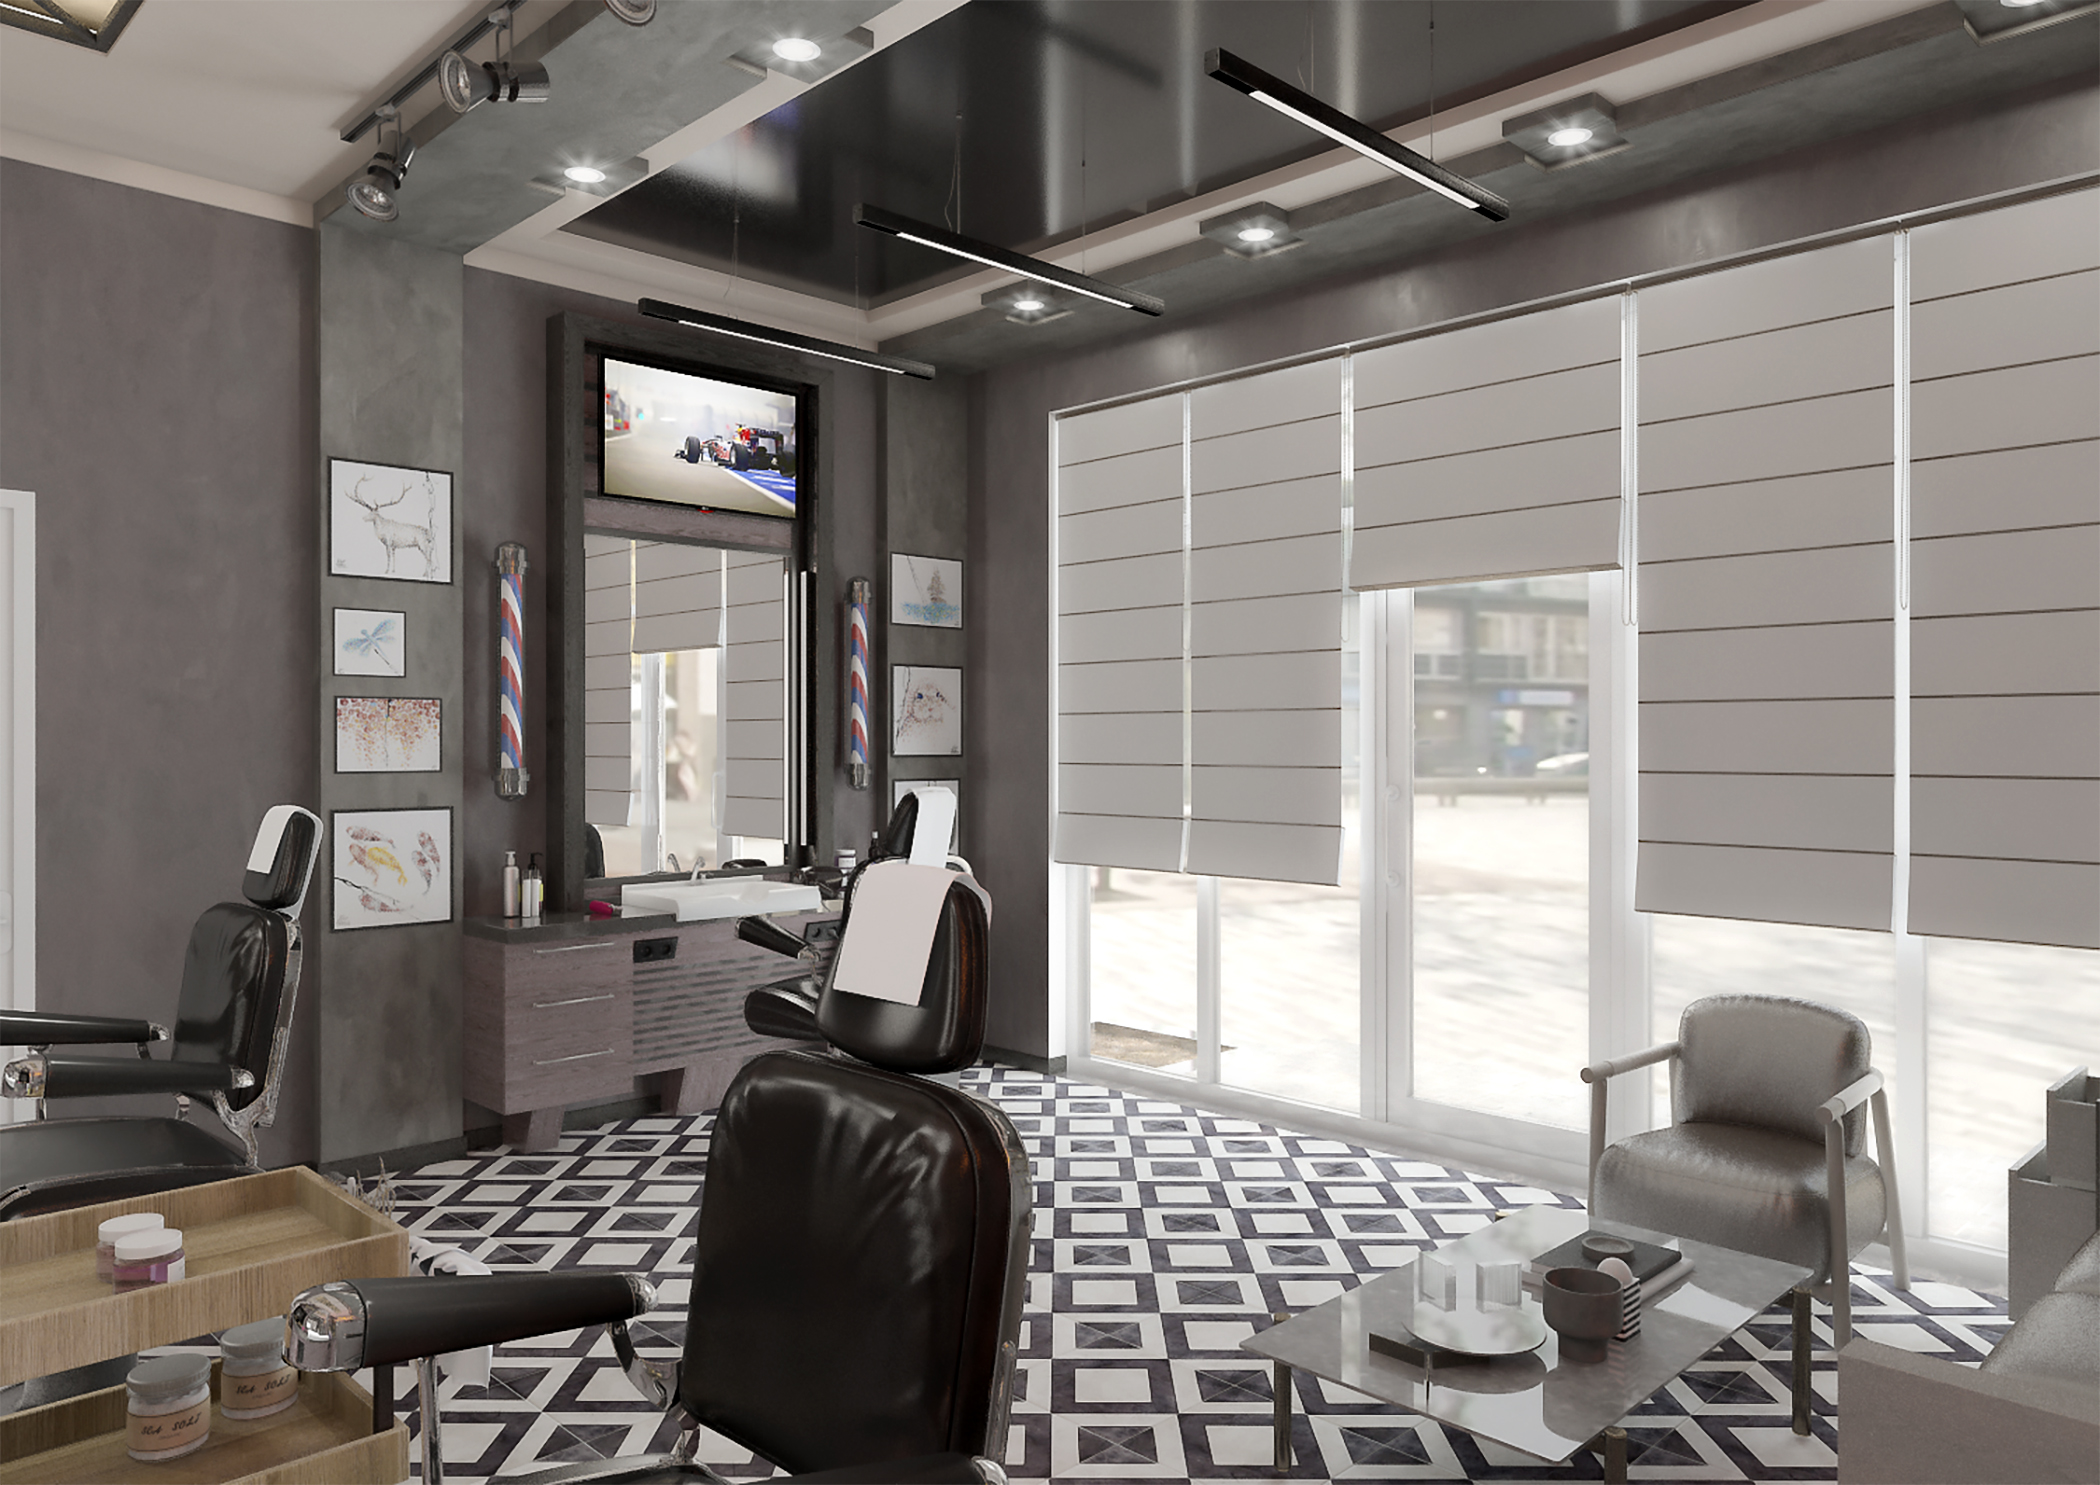 Barbershop in 3d max vray 3.0 image